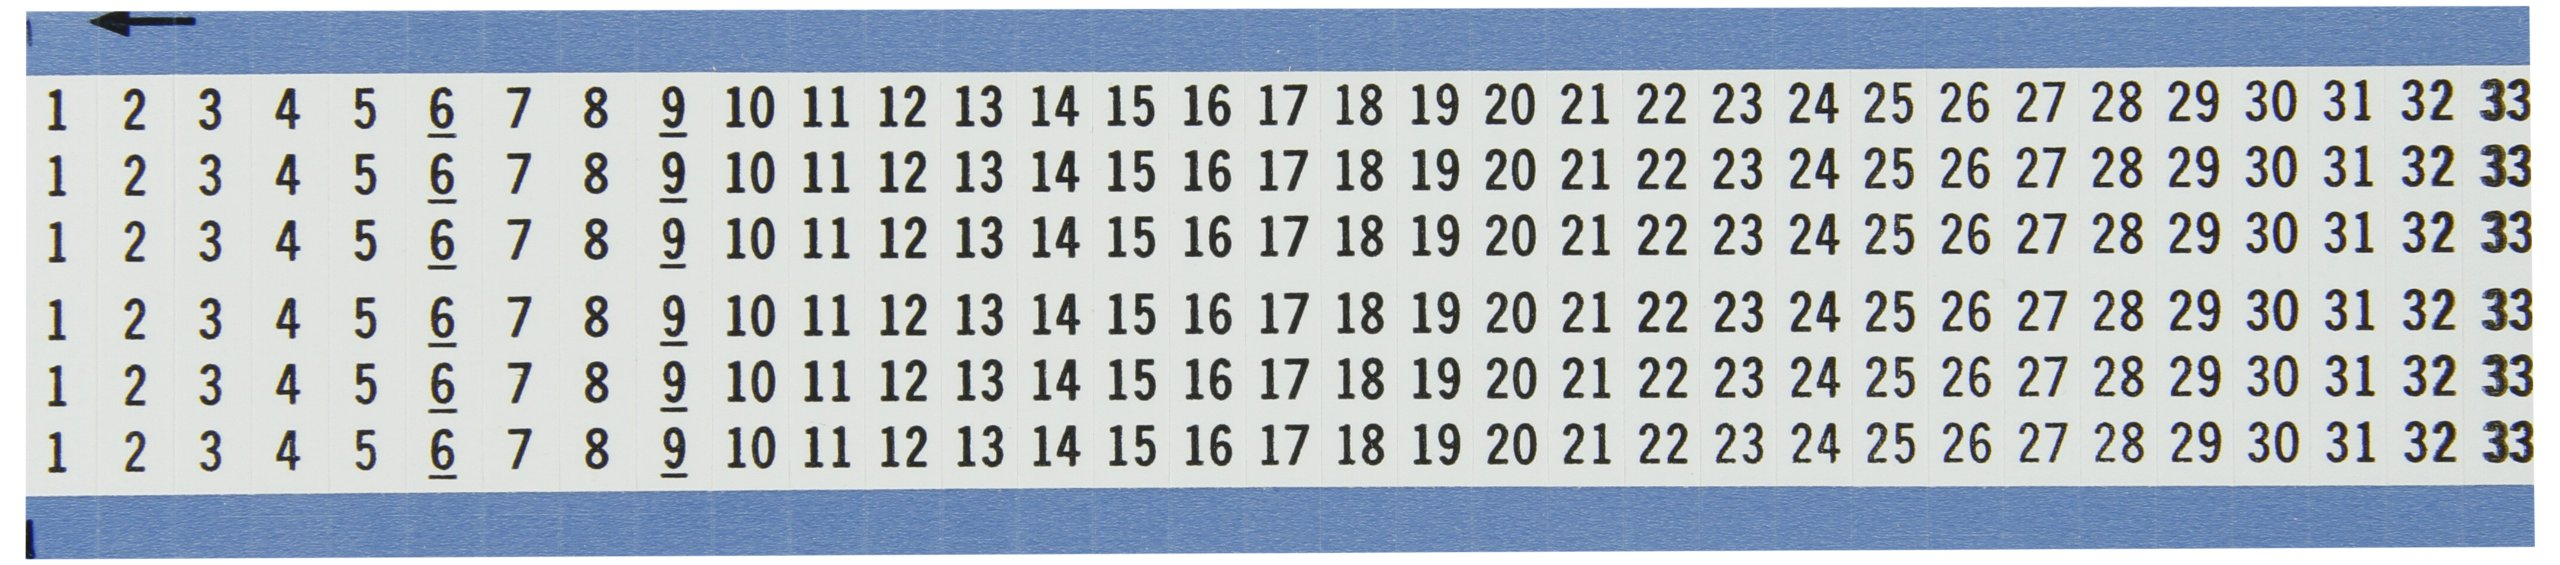 Brady WM-1-33-VP Repositionable Vinyl Cloth (B-500), Black on White, Consecutive Numbers Wire Marker Card (5 Cards)